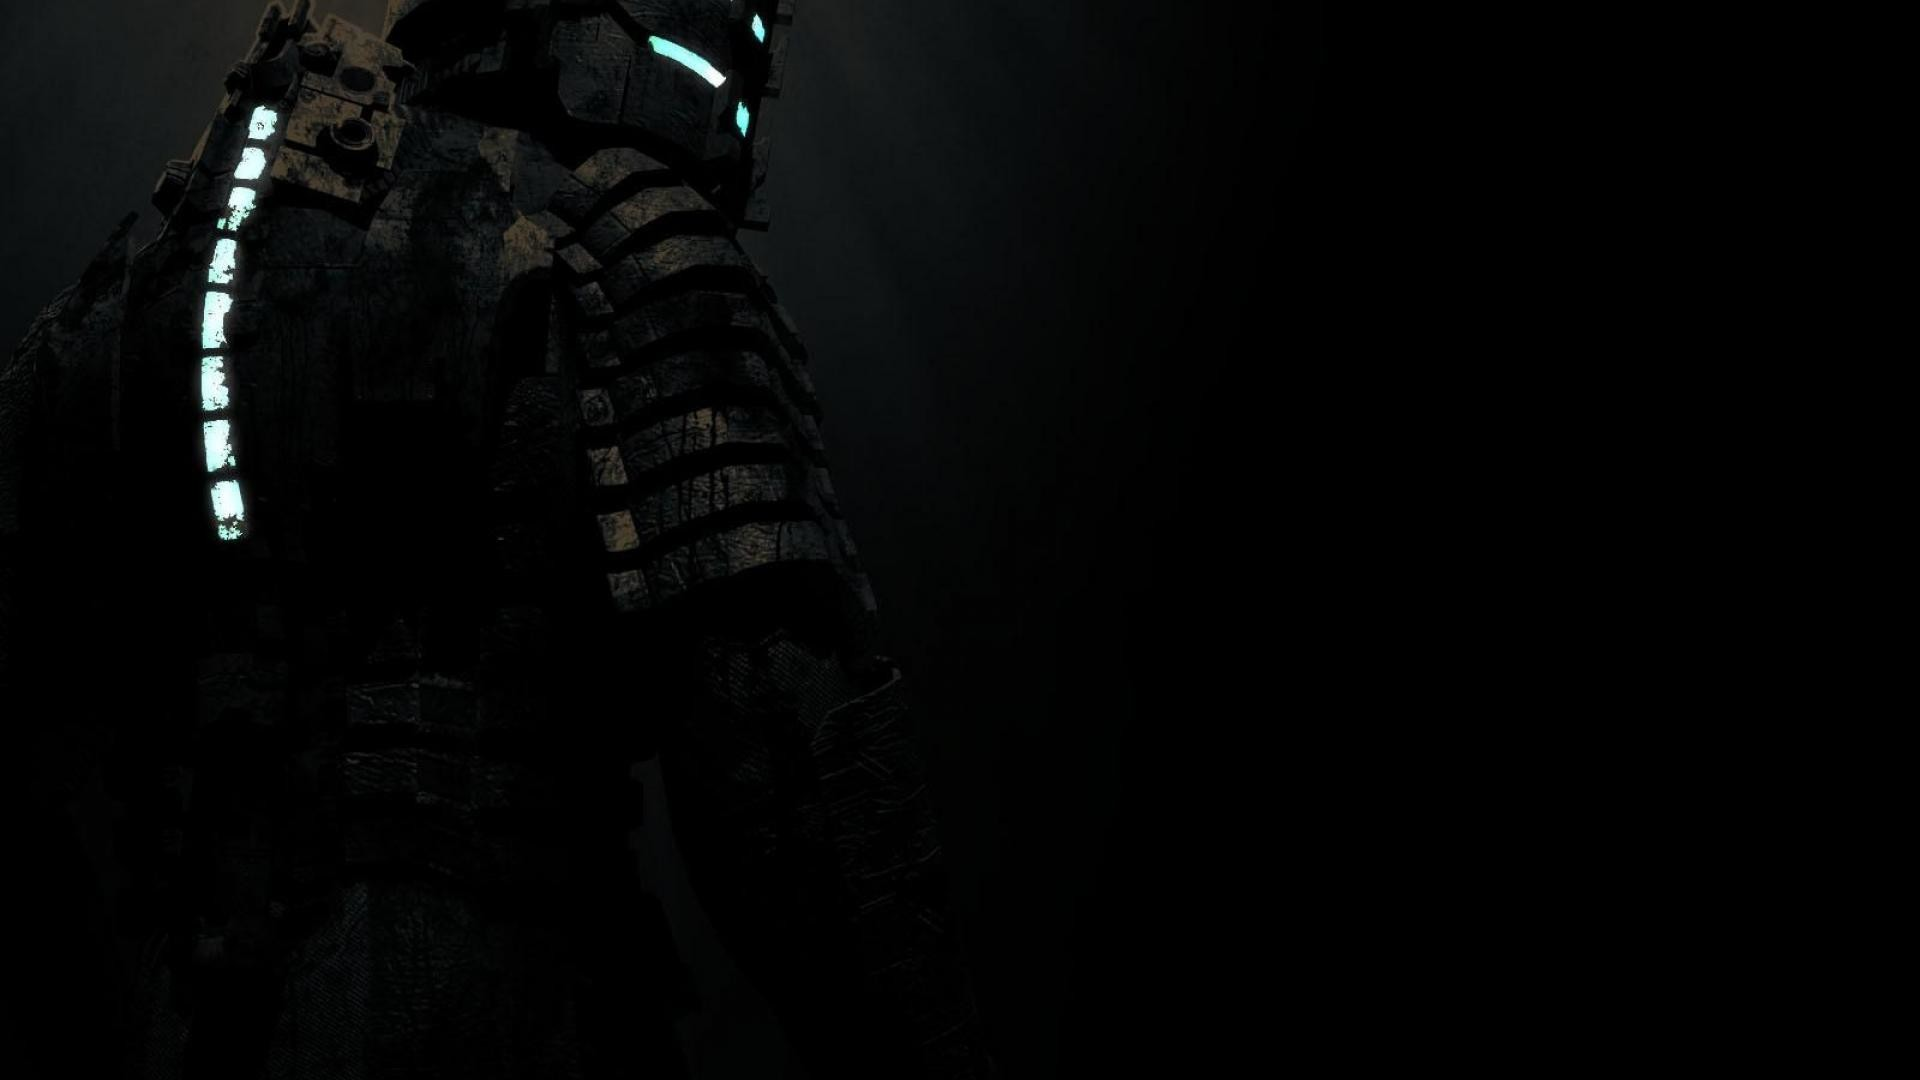 Astro gaming wallpaper 82 images - Dead space 1 wallpaper hd ...